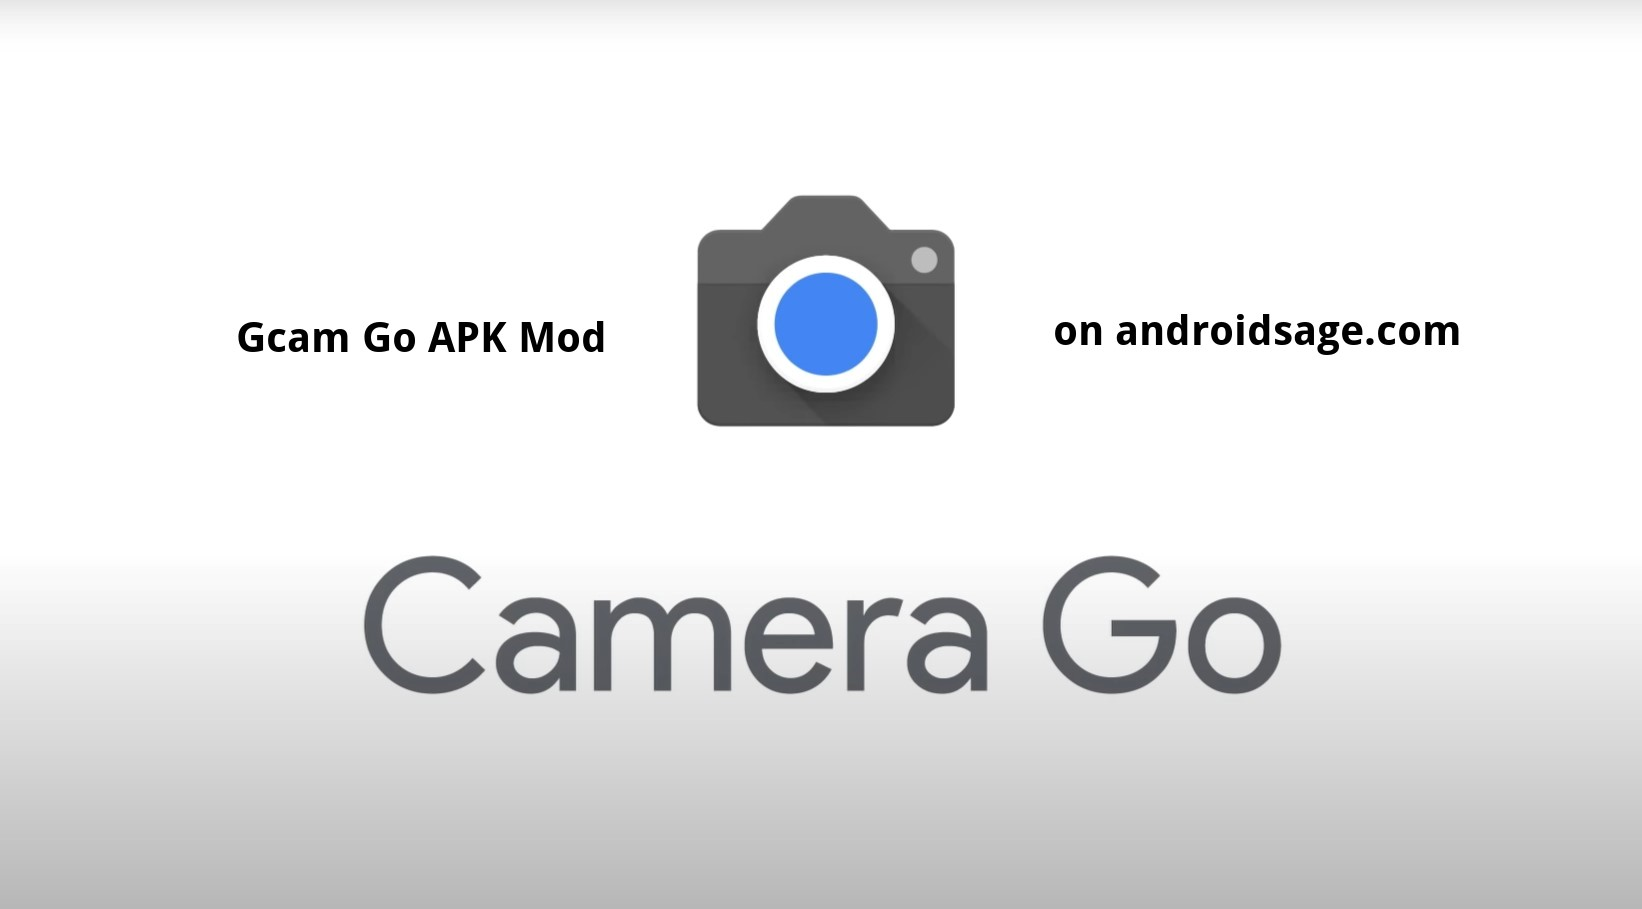 Download Google Camera Go APK Mod with HDR feature on Gcam Go APK Mod